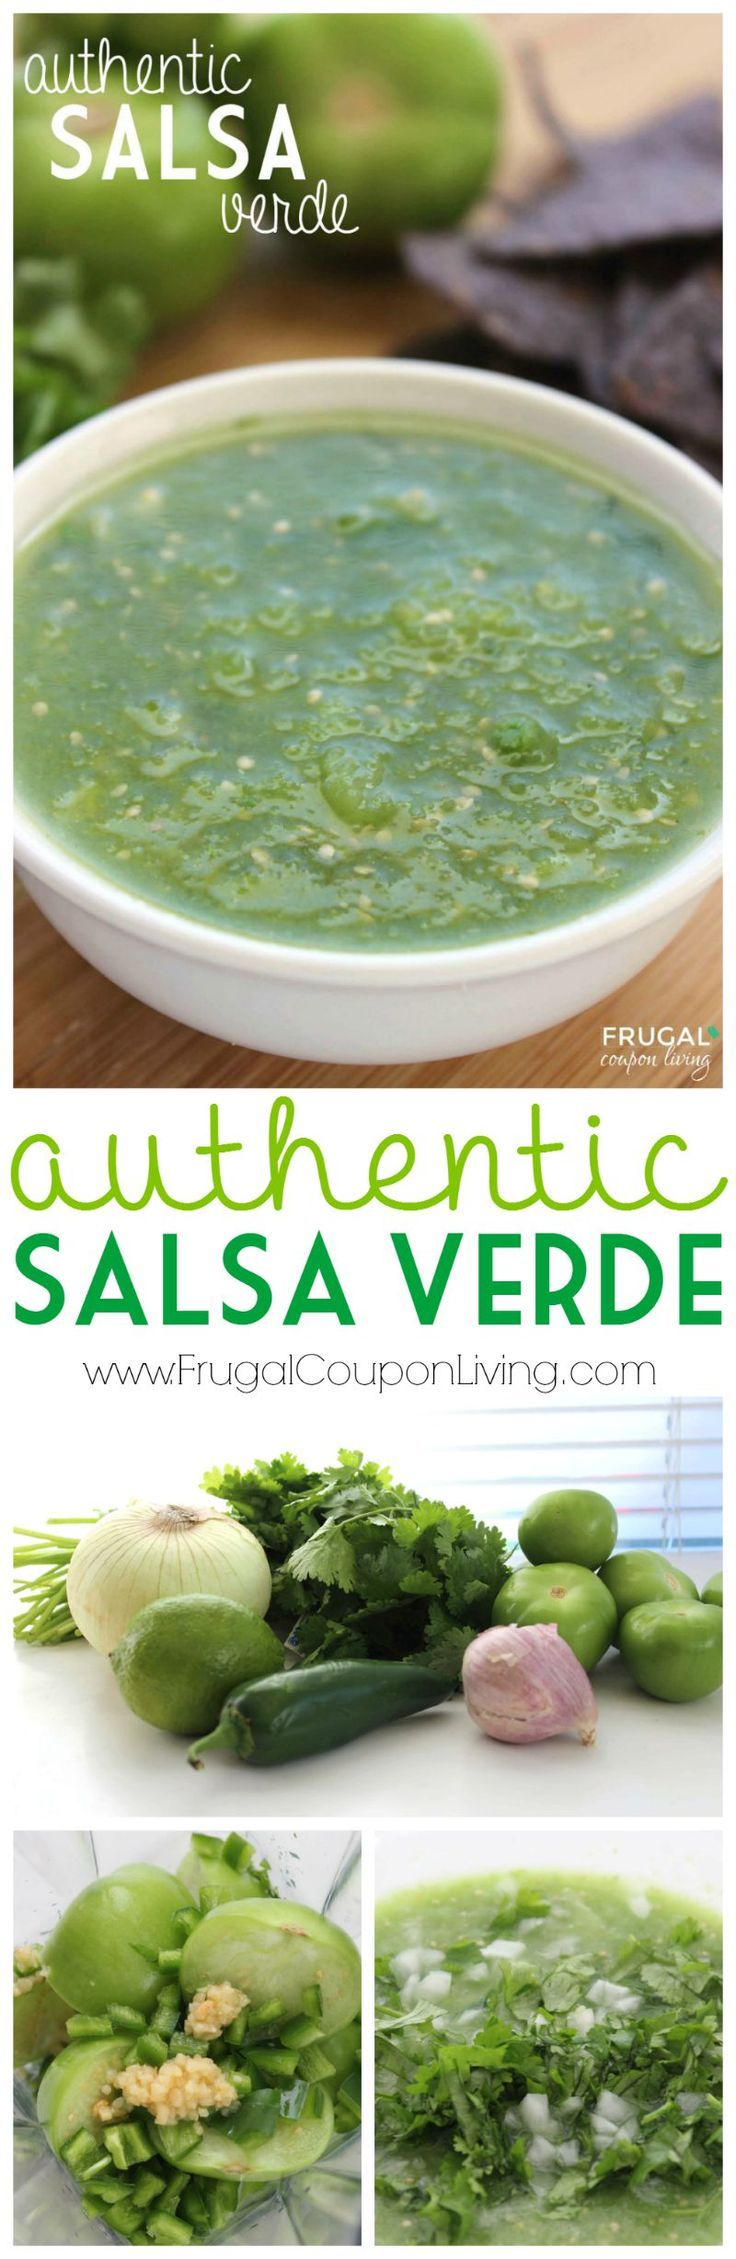 Salsa Verde - Authentic Mexican Salsa Recipe on Frugal Coupon Living. Green Salsa Recipe. Restaurant Salsa recipe.